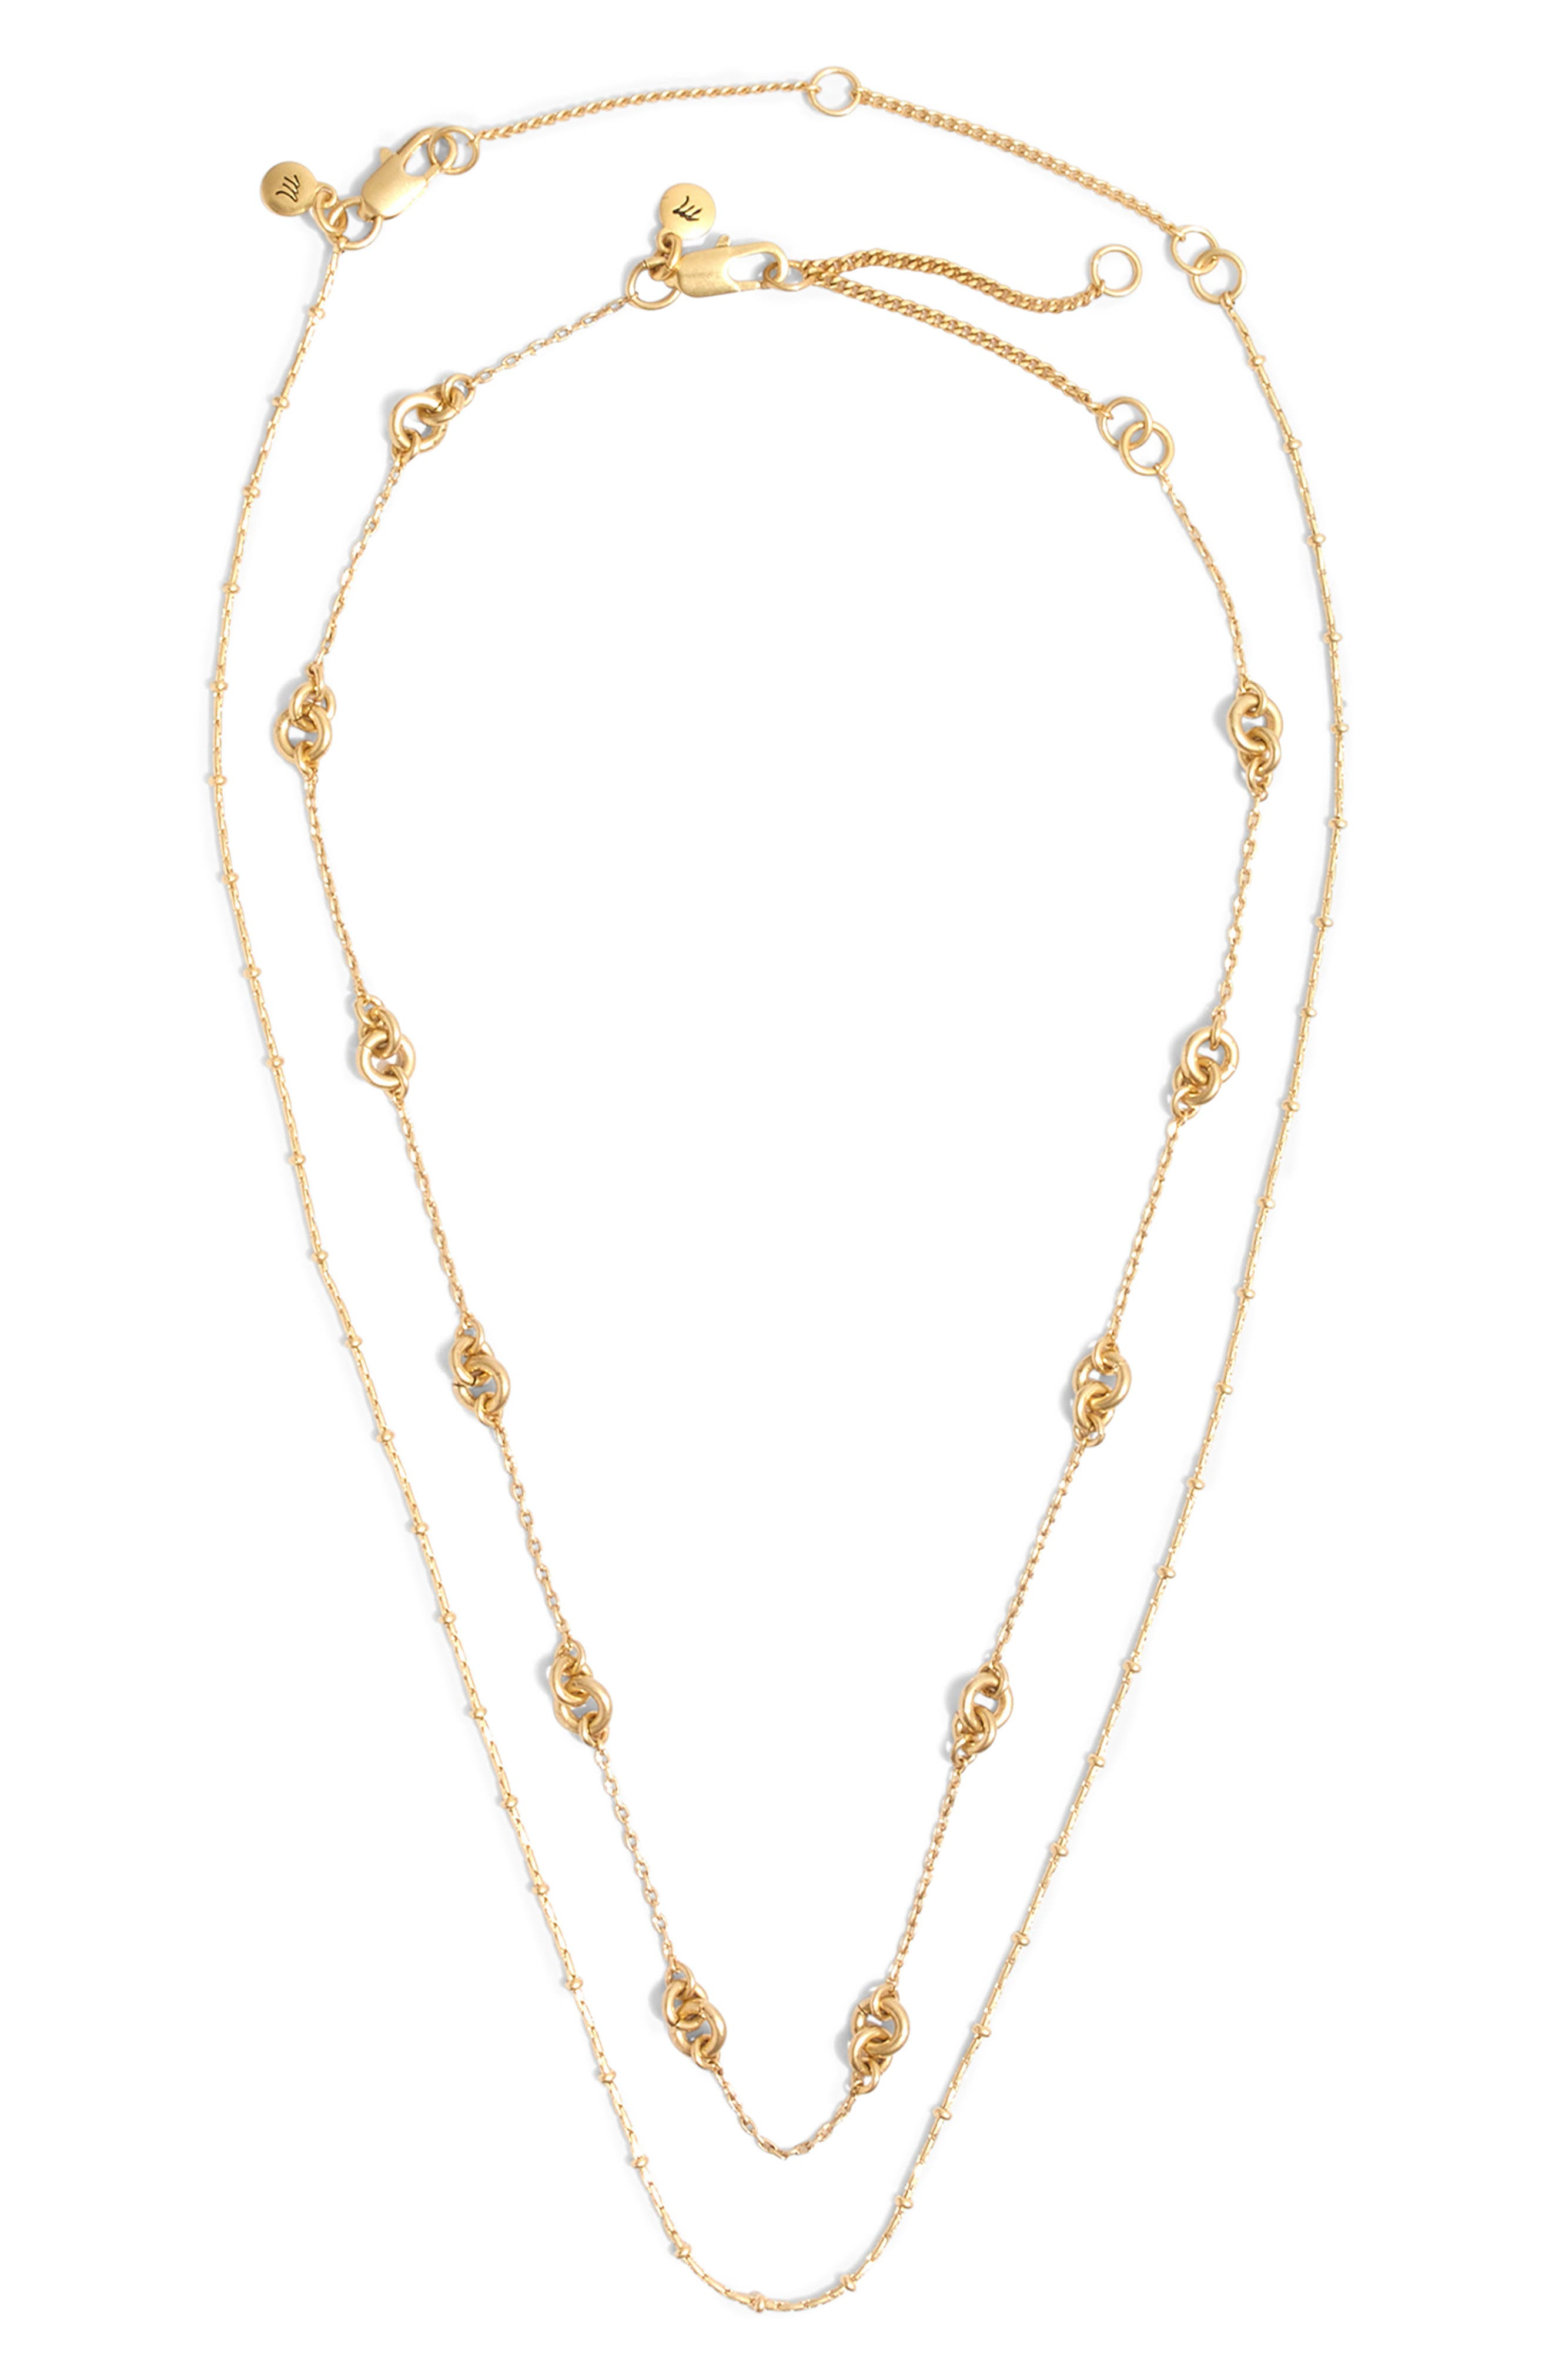 MADEWELL, Layered Chain Necklace, Alternate thumbnail 3, color, 710